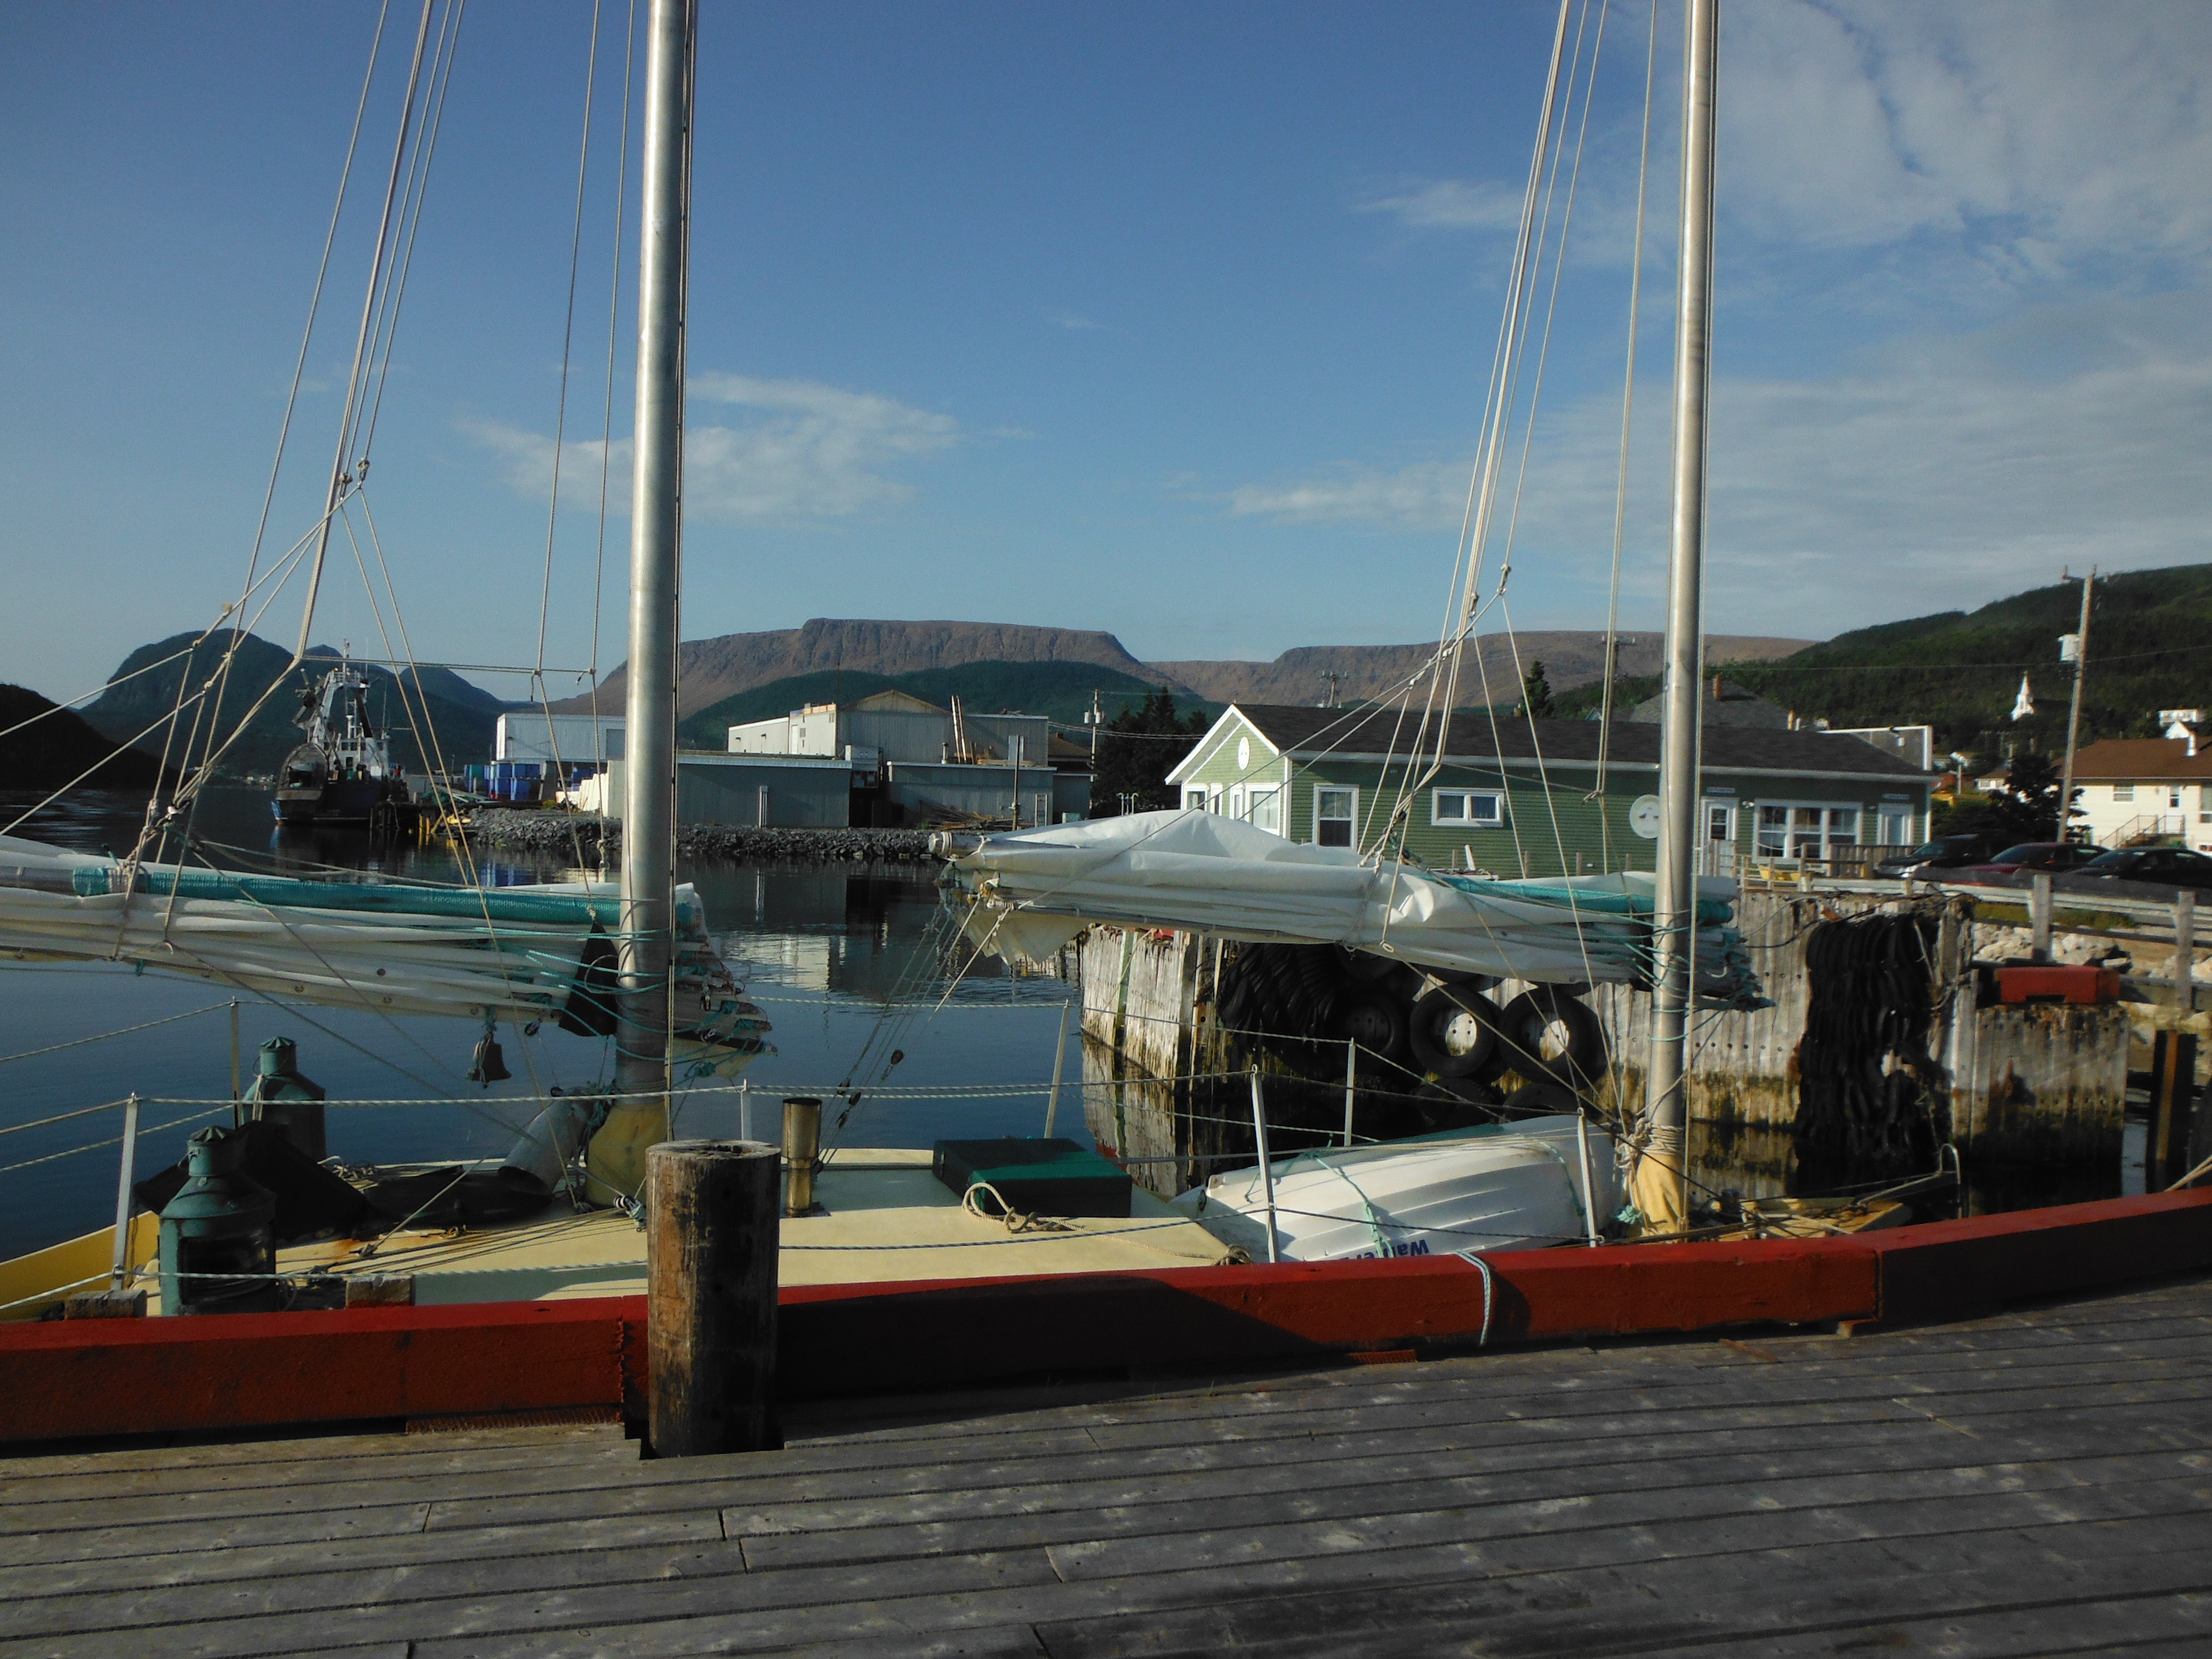 Photo: Tied to the wharf in Woody Point with the Tablelands in the distance.